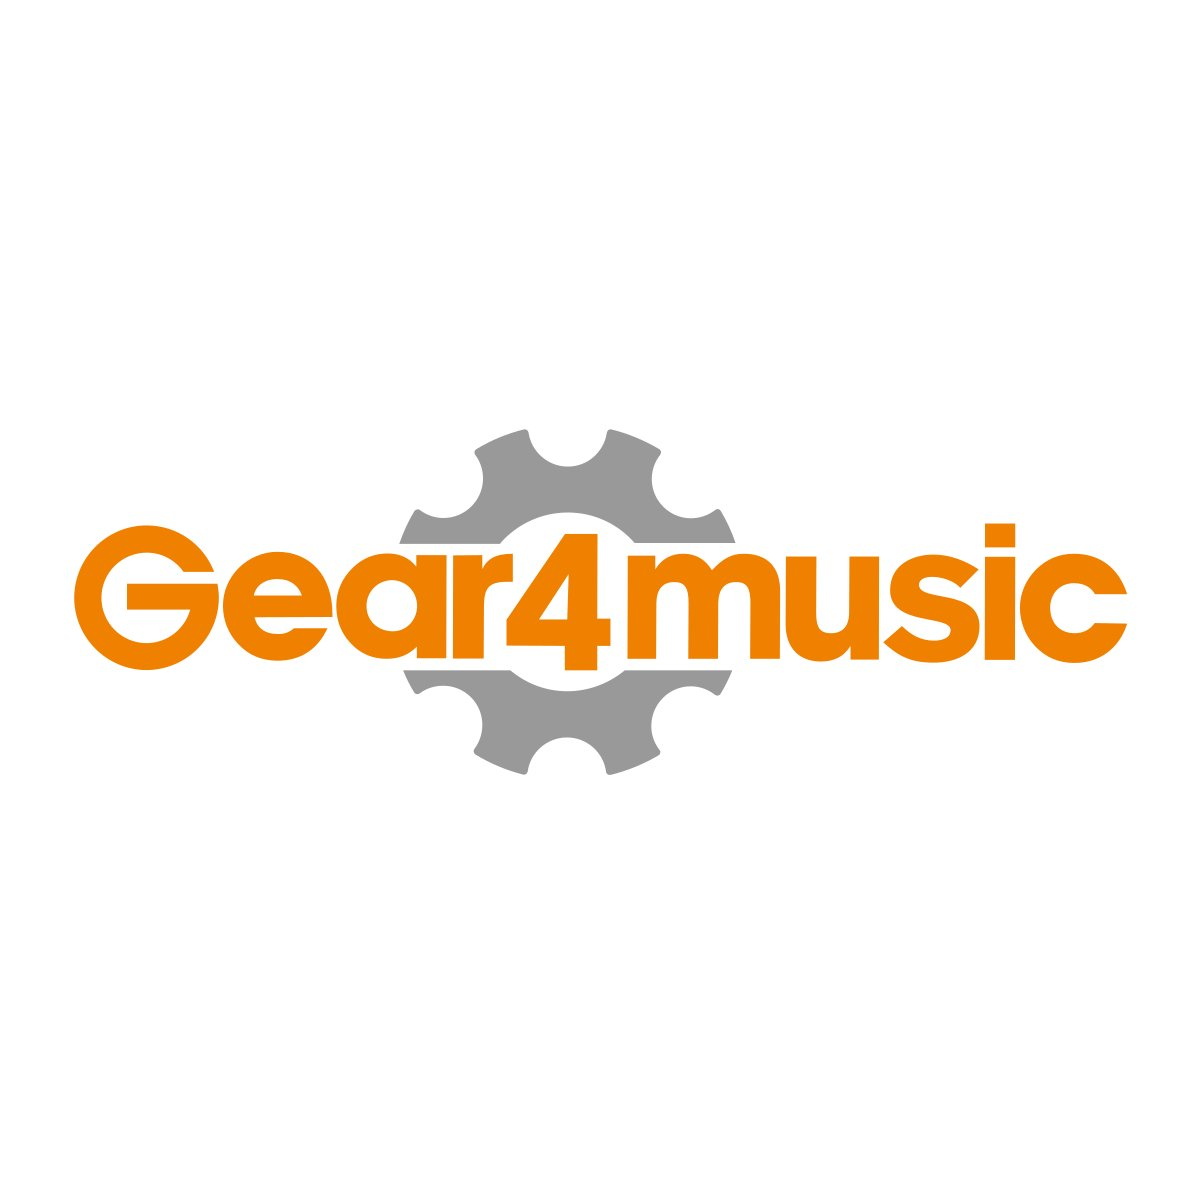 Image of 4 Boom Mic??Stand??and Bag Pack??by Gear4music